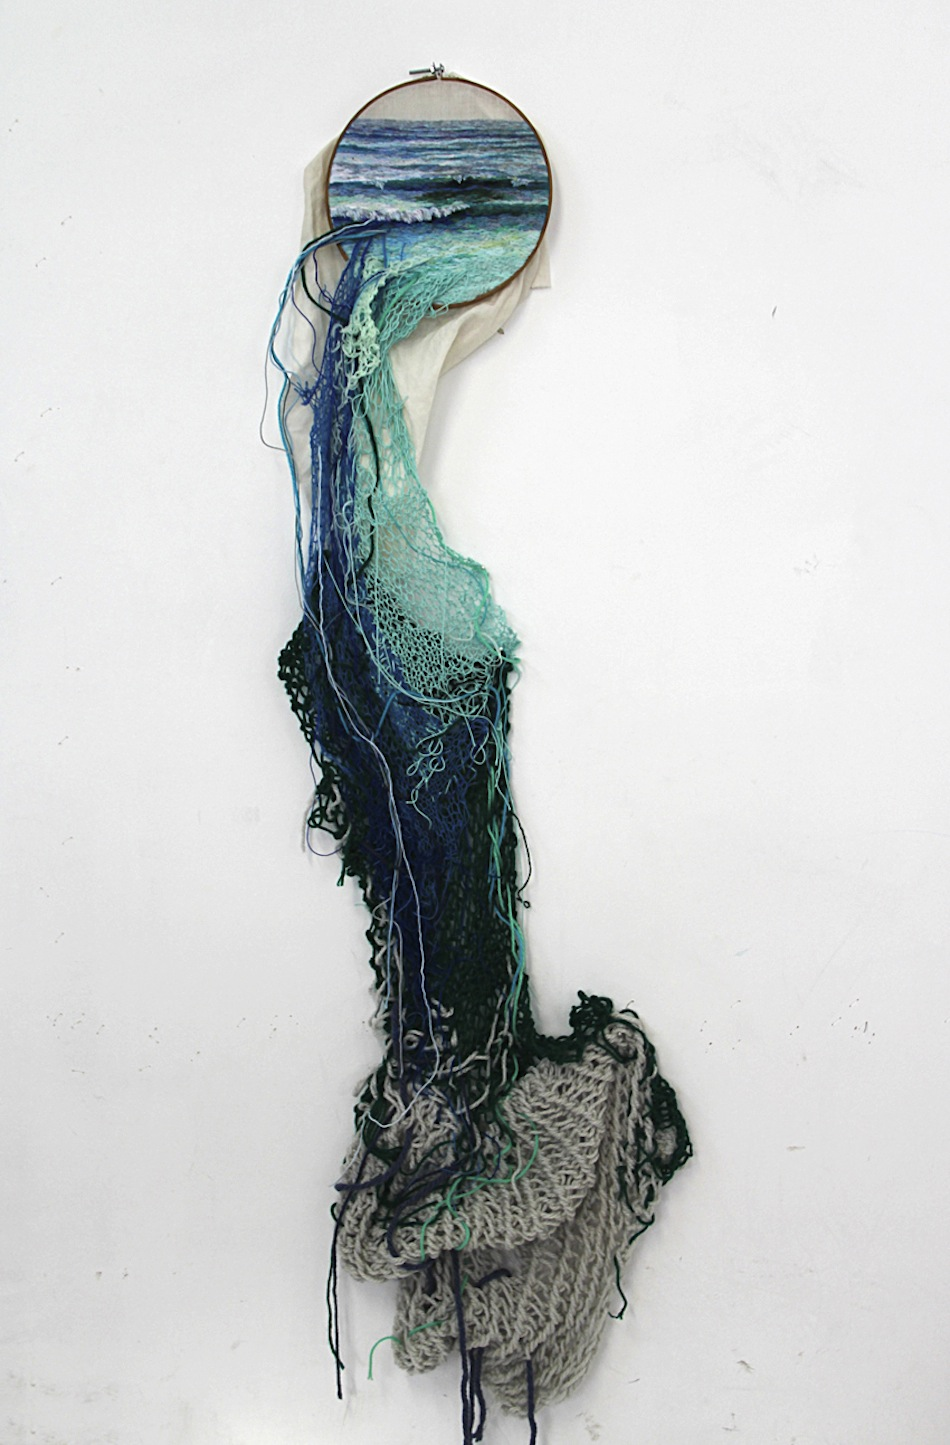 More Embroidery Work from Ana Teresa Barboza: AT_06.jpg